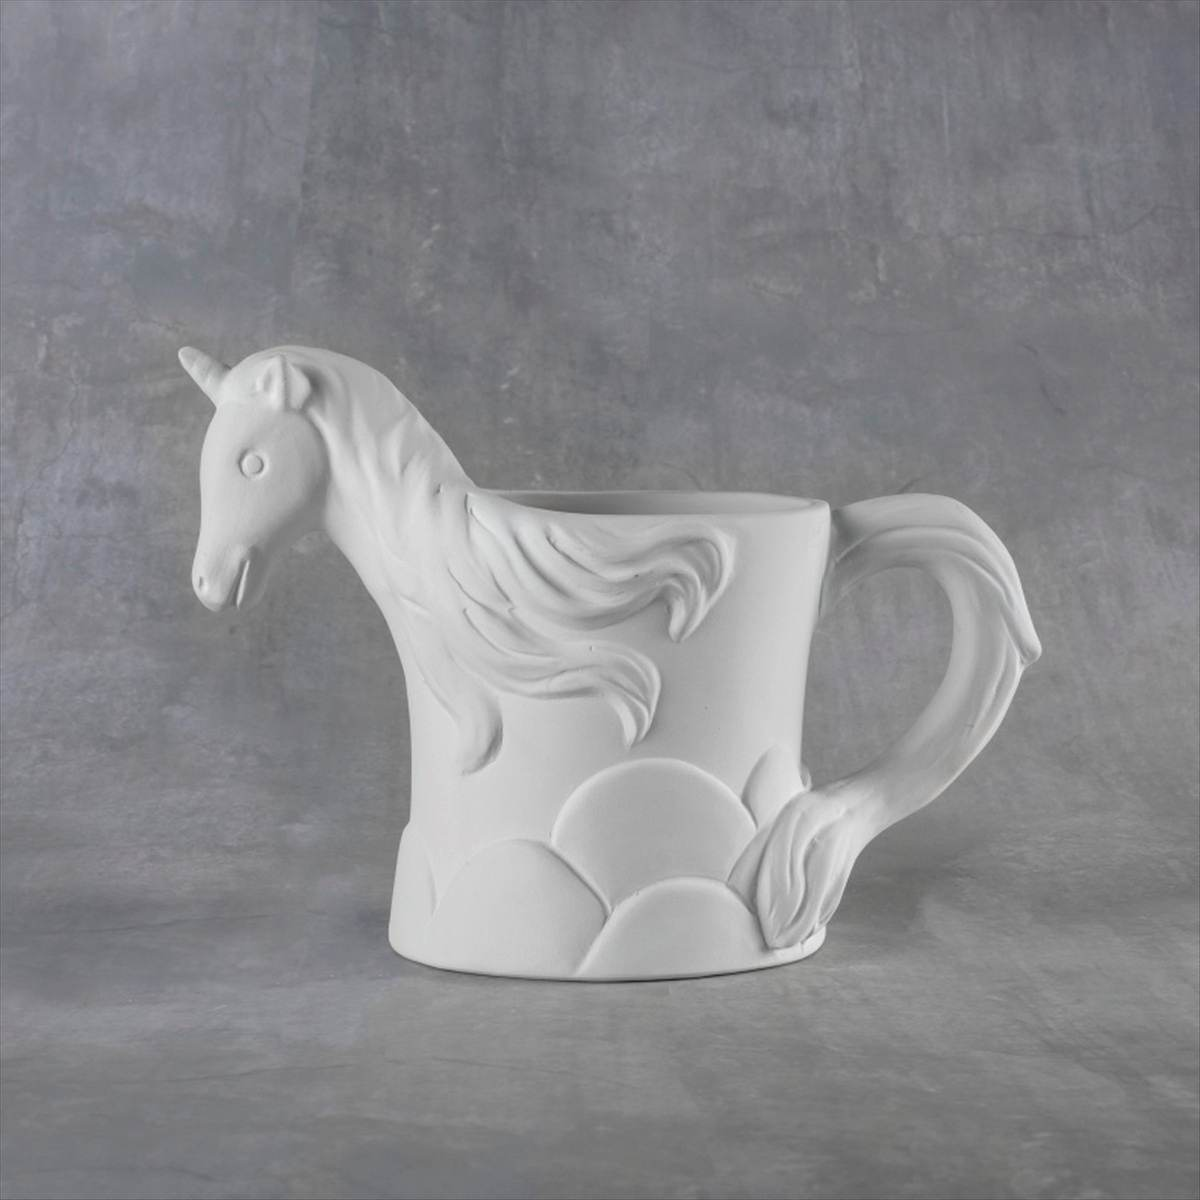 Duncan 38104 Bisque Unicorn Mug 12 oz